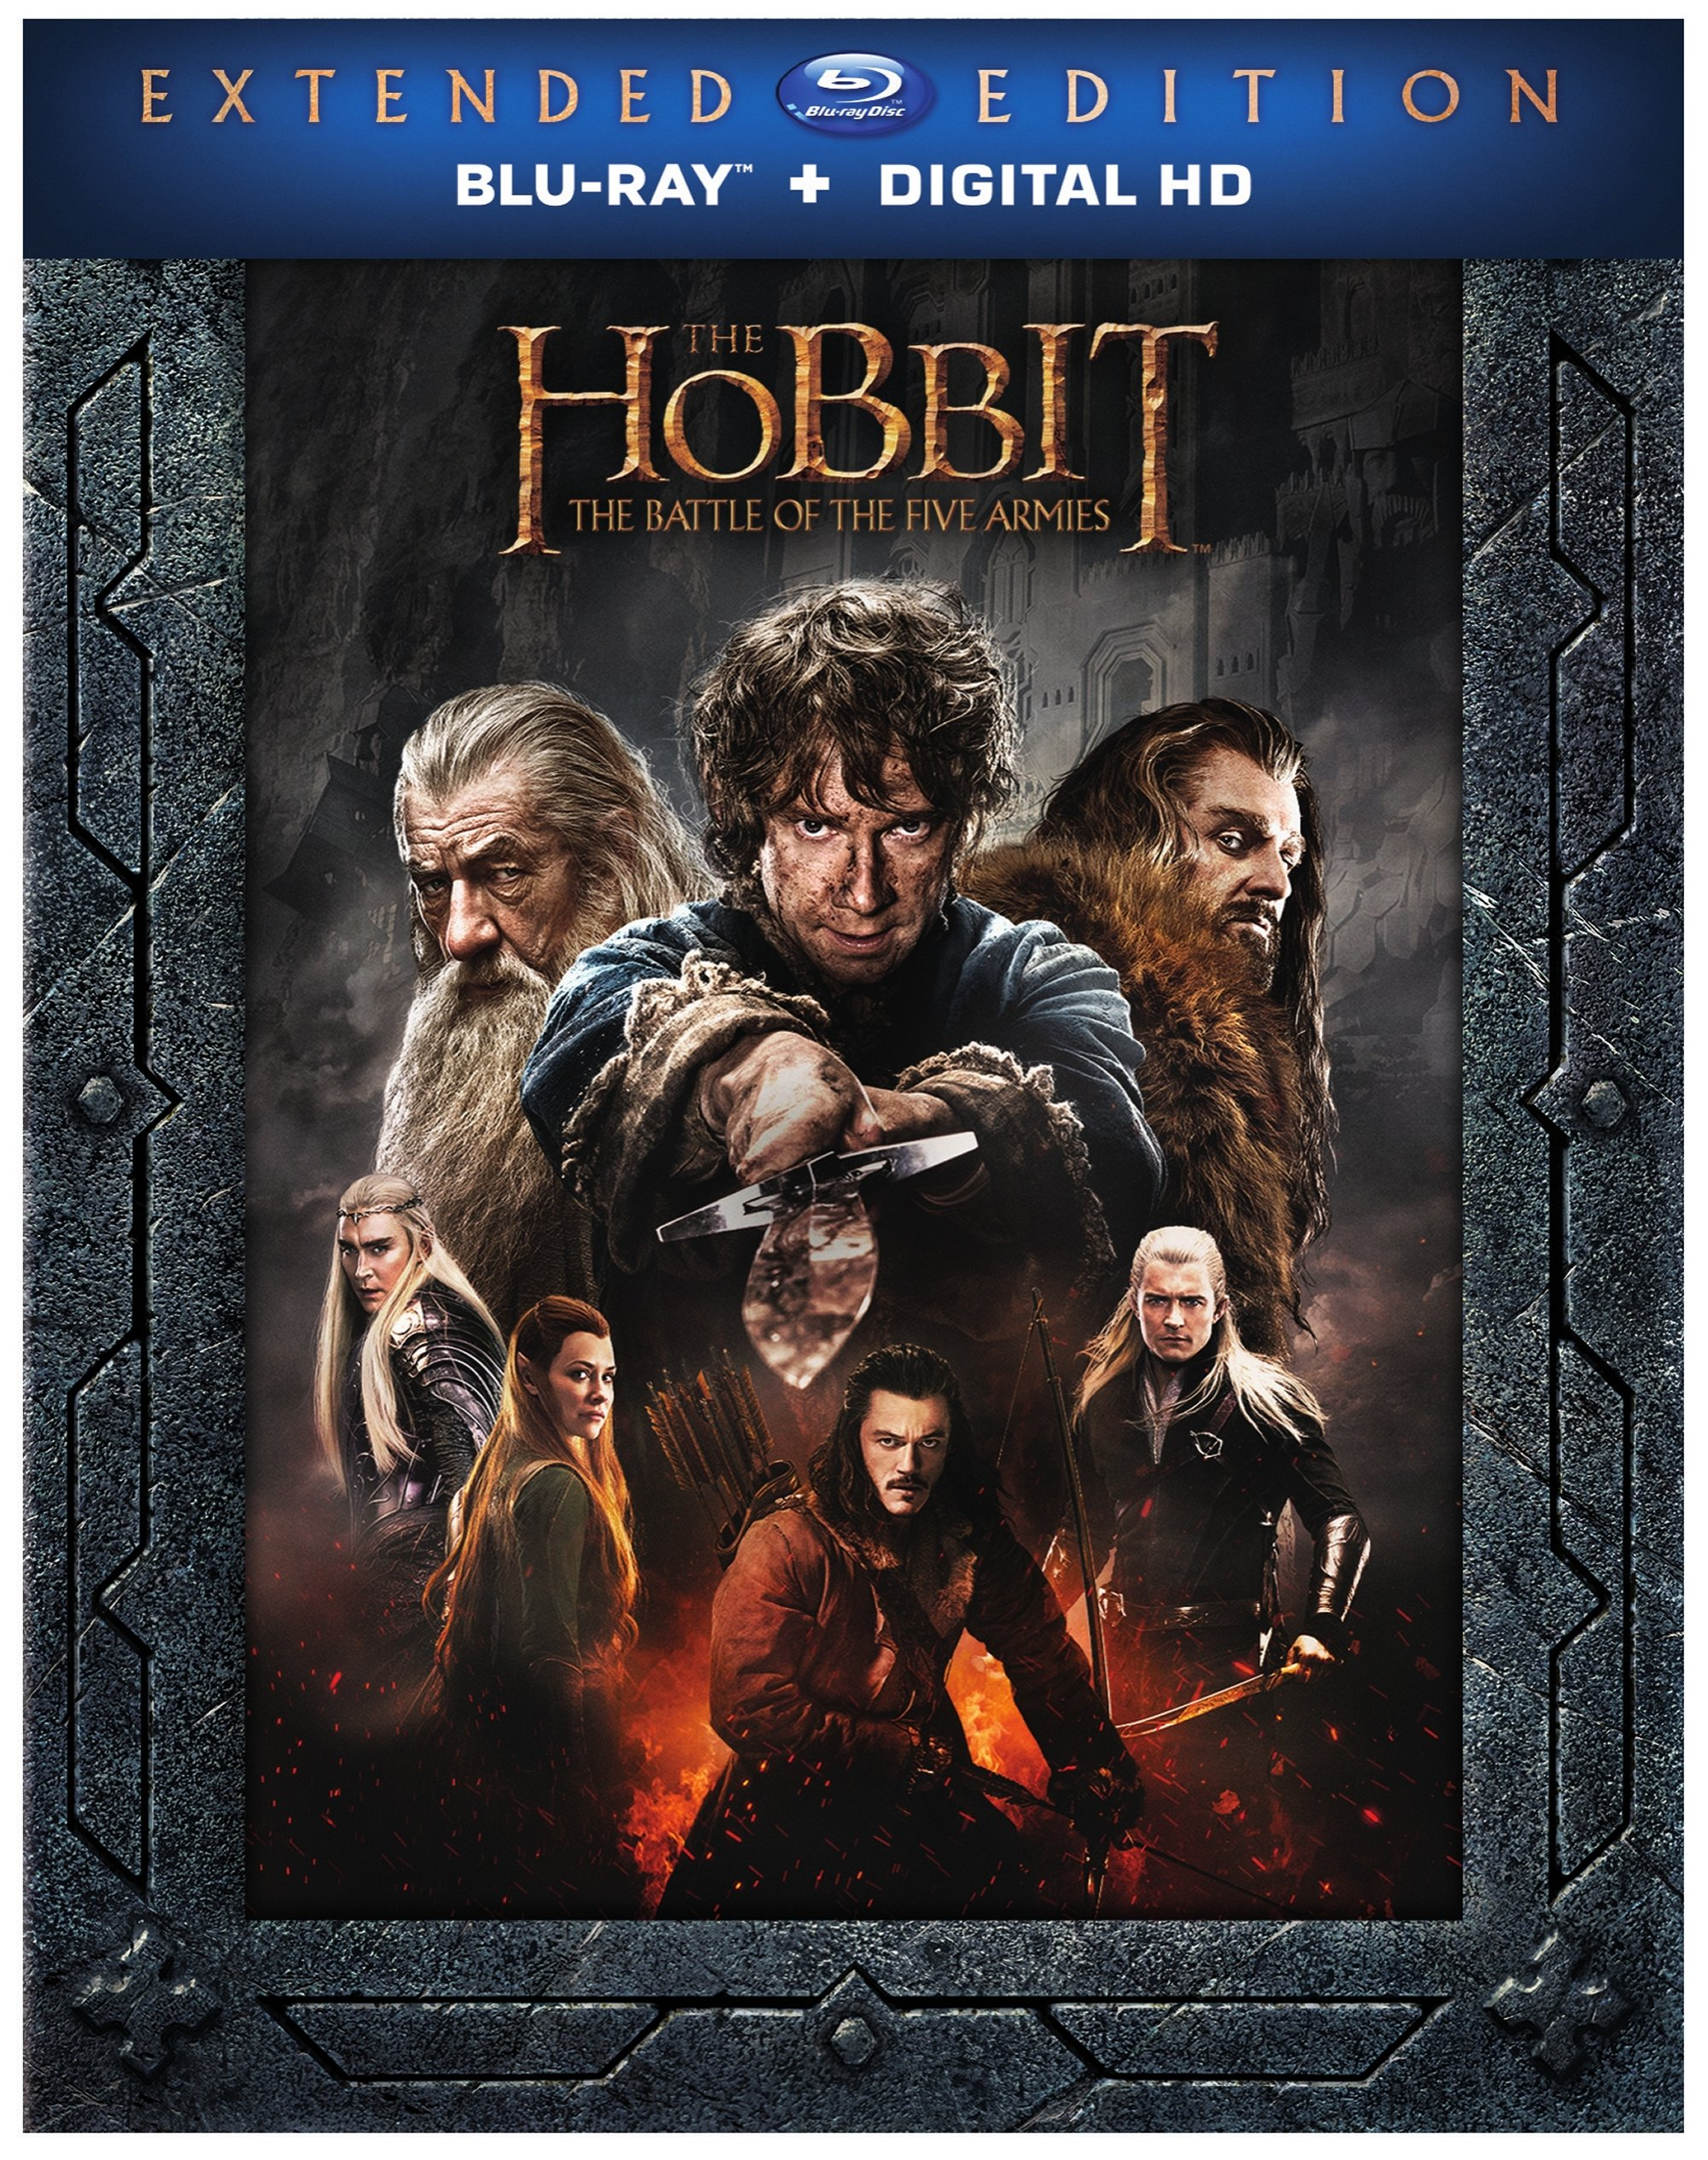 Extended Edition official press release | Hobbit Movie News and Rumors | TheOneRing.net™